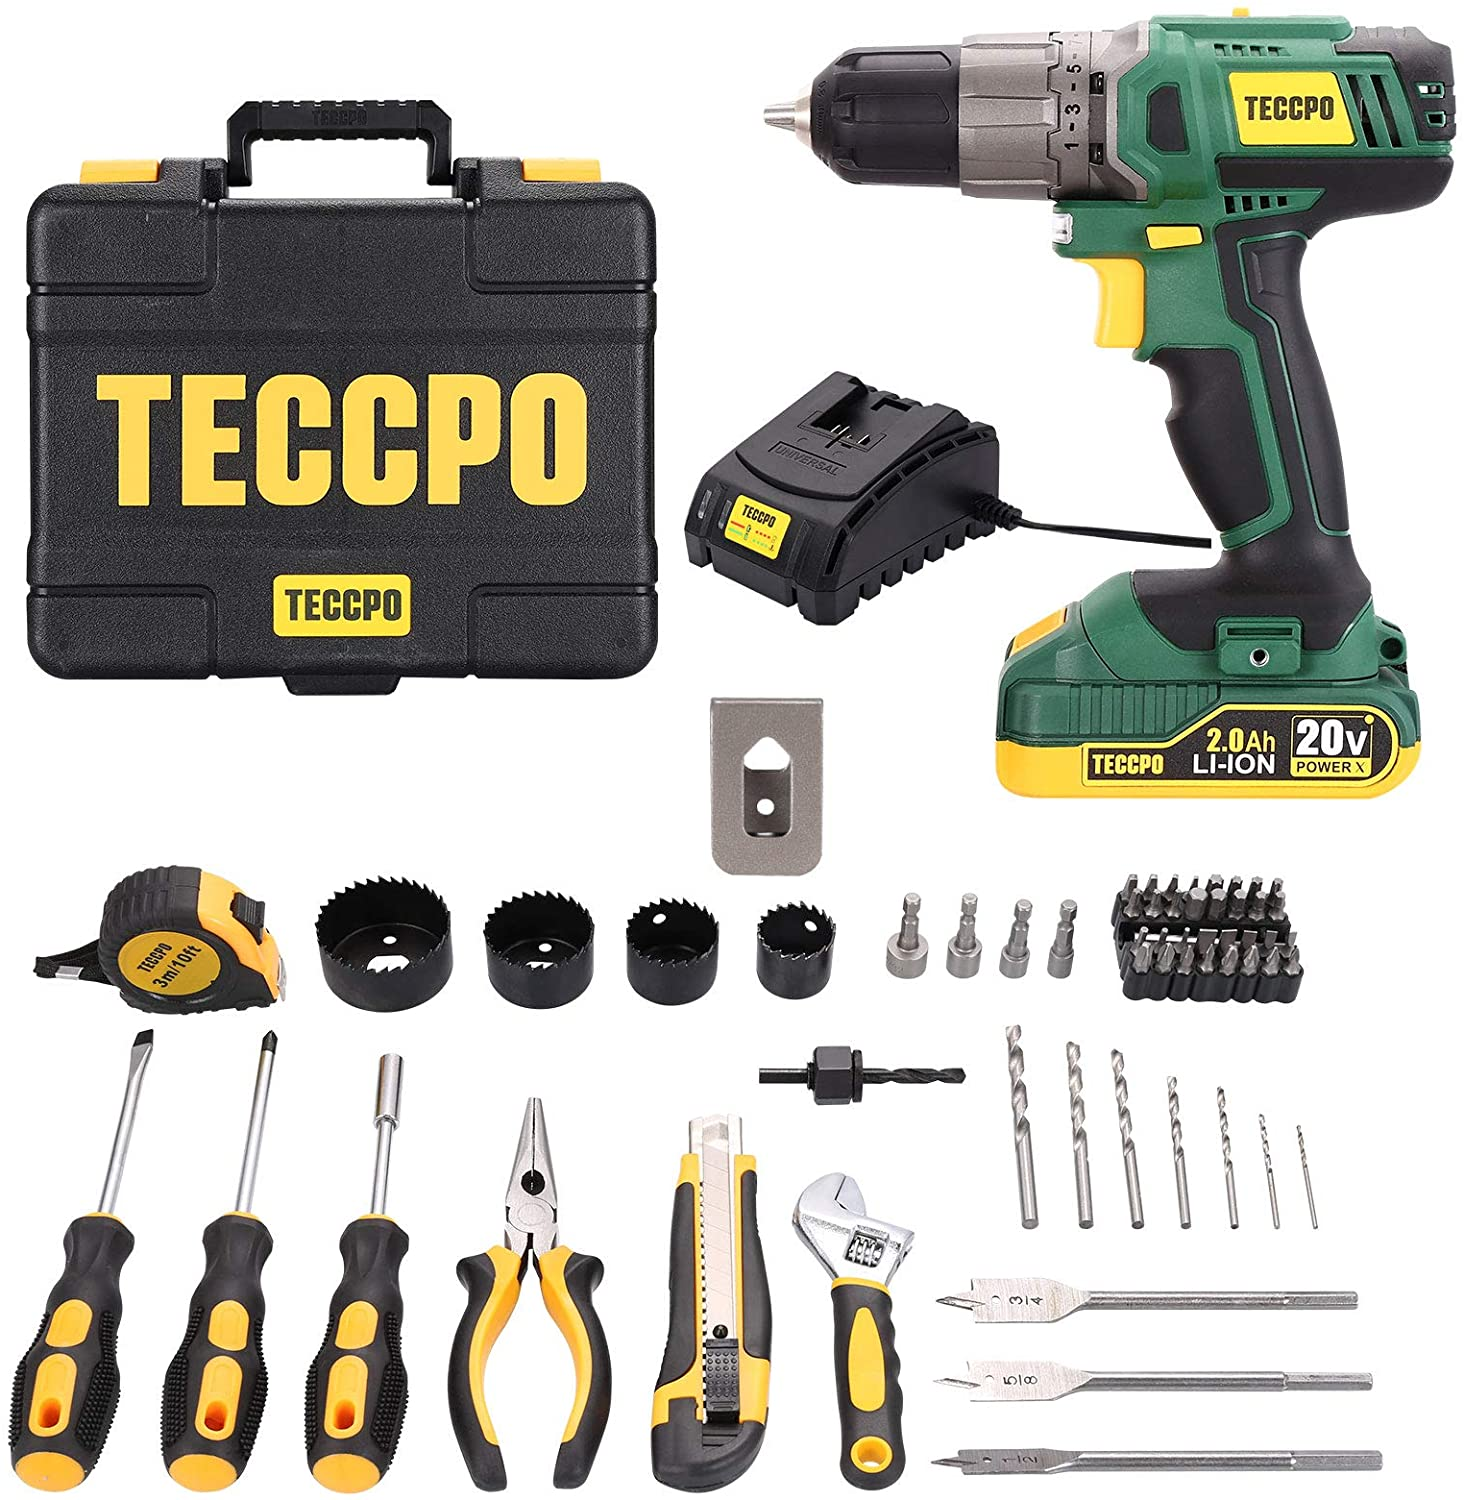 Amazon: Home Tool Kit & Drill for $35.99 (Reg. Price $79.99) after code and coupon!